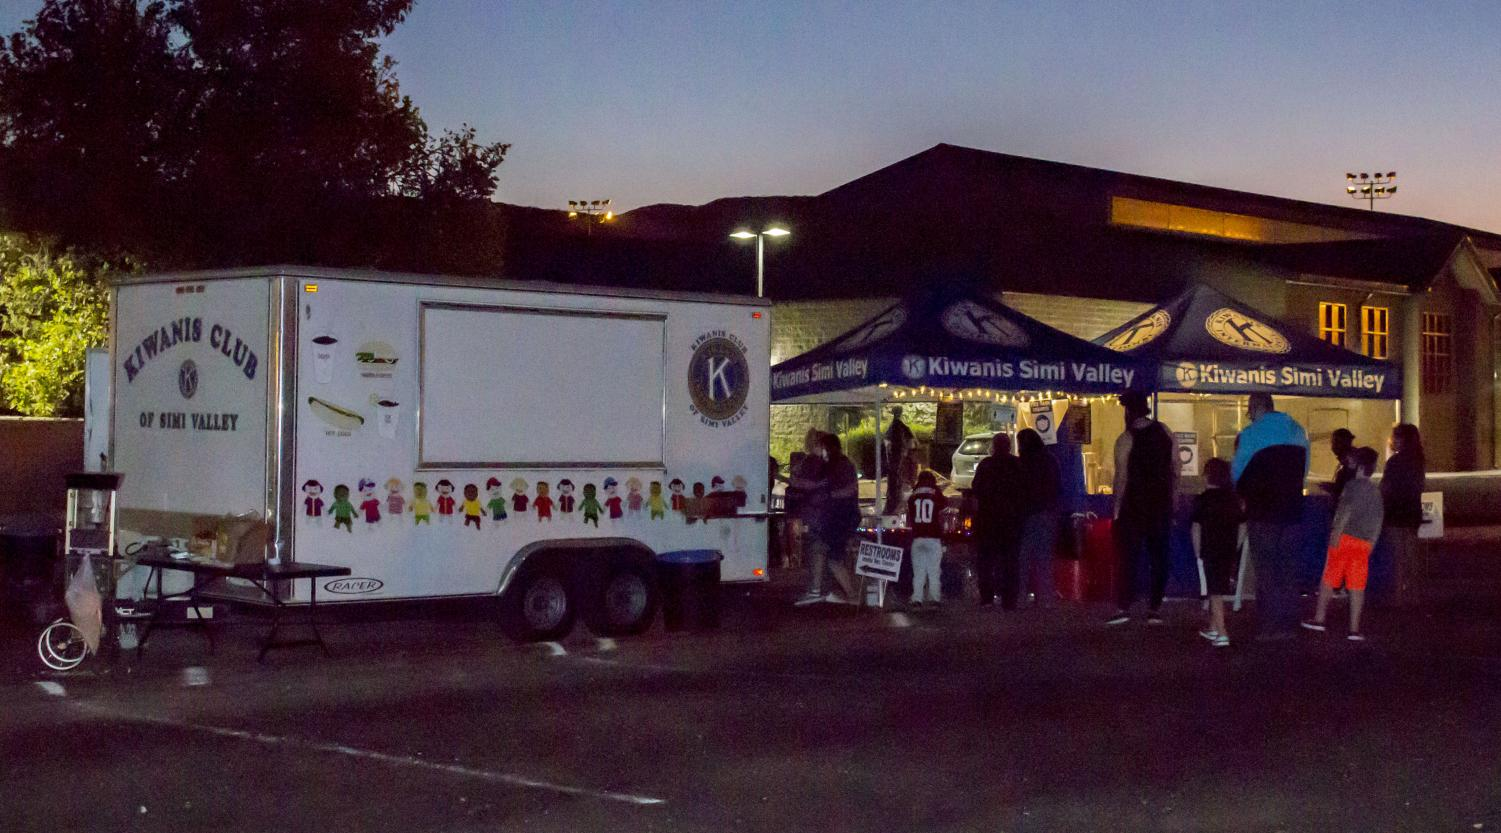 The Kiwanis Club of Simi Valley sells and prepares food for attendees of ___ at Rancho Santa Susana Community Park on Thursday, Oct. 29.